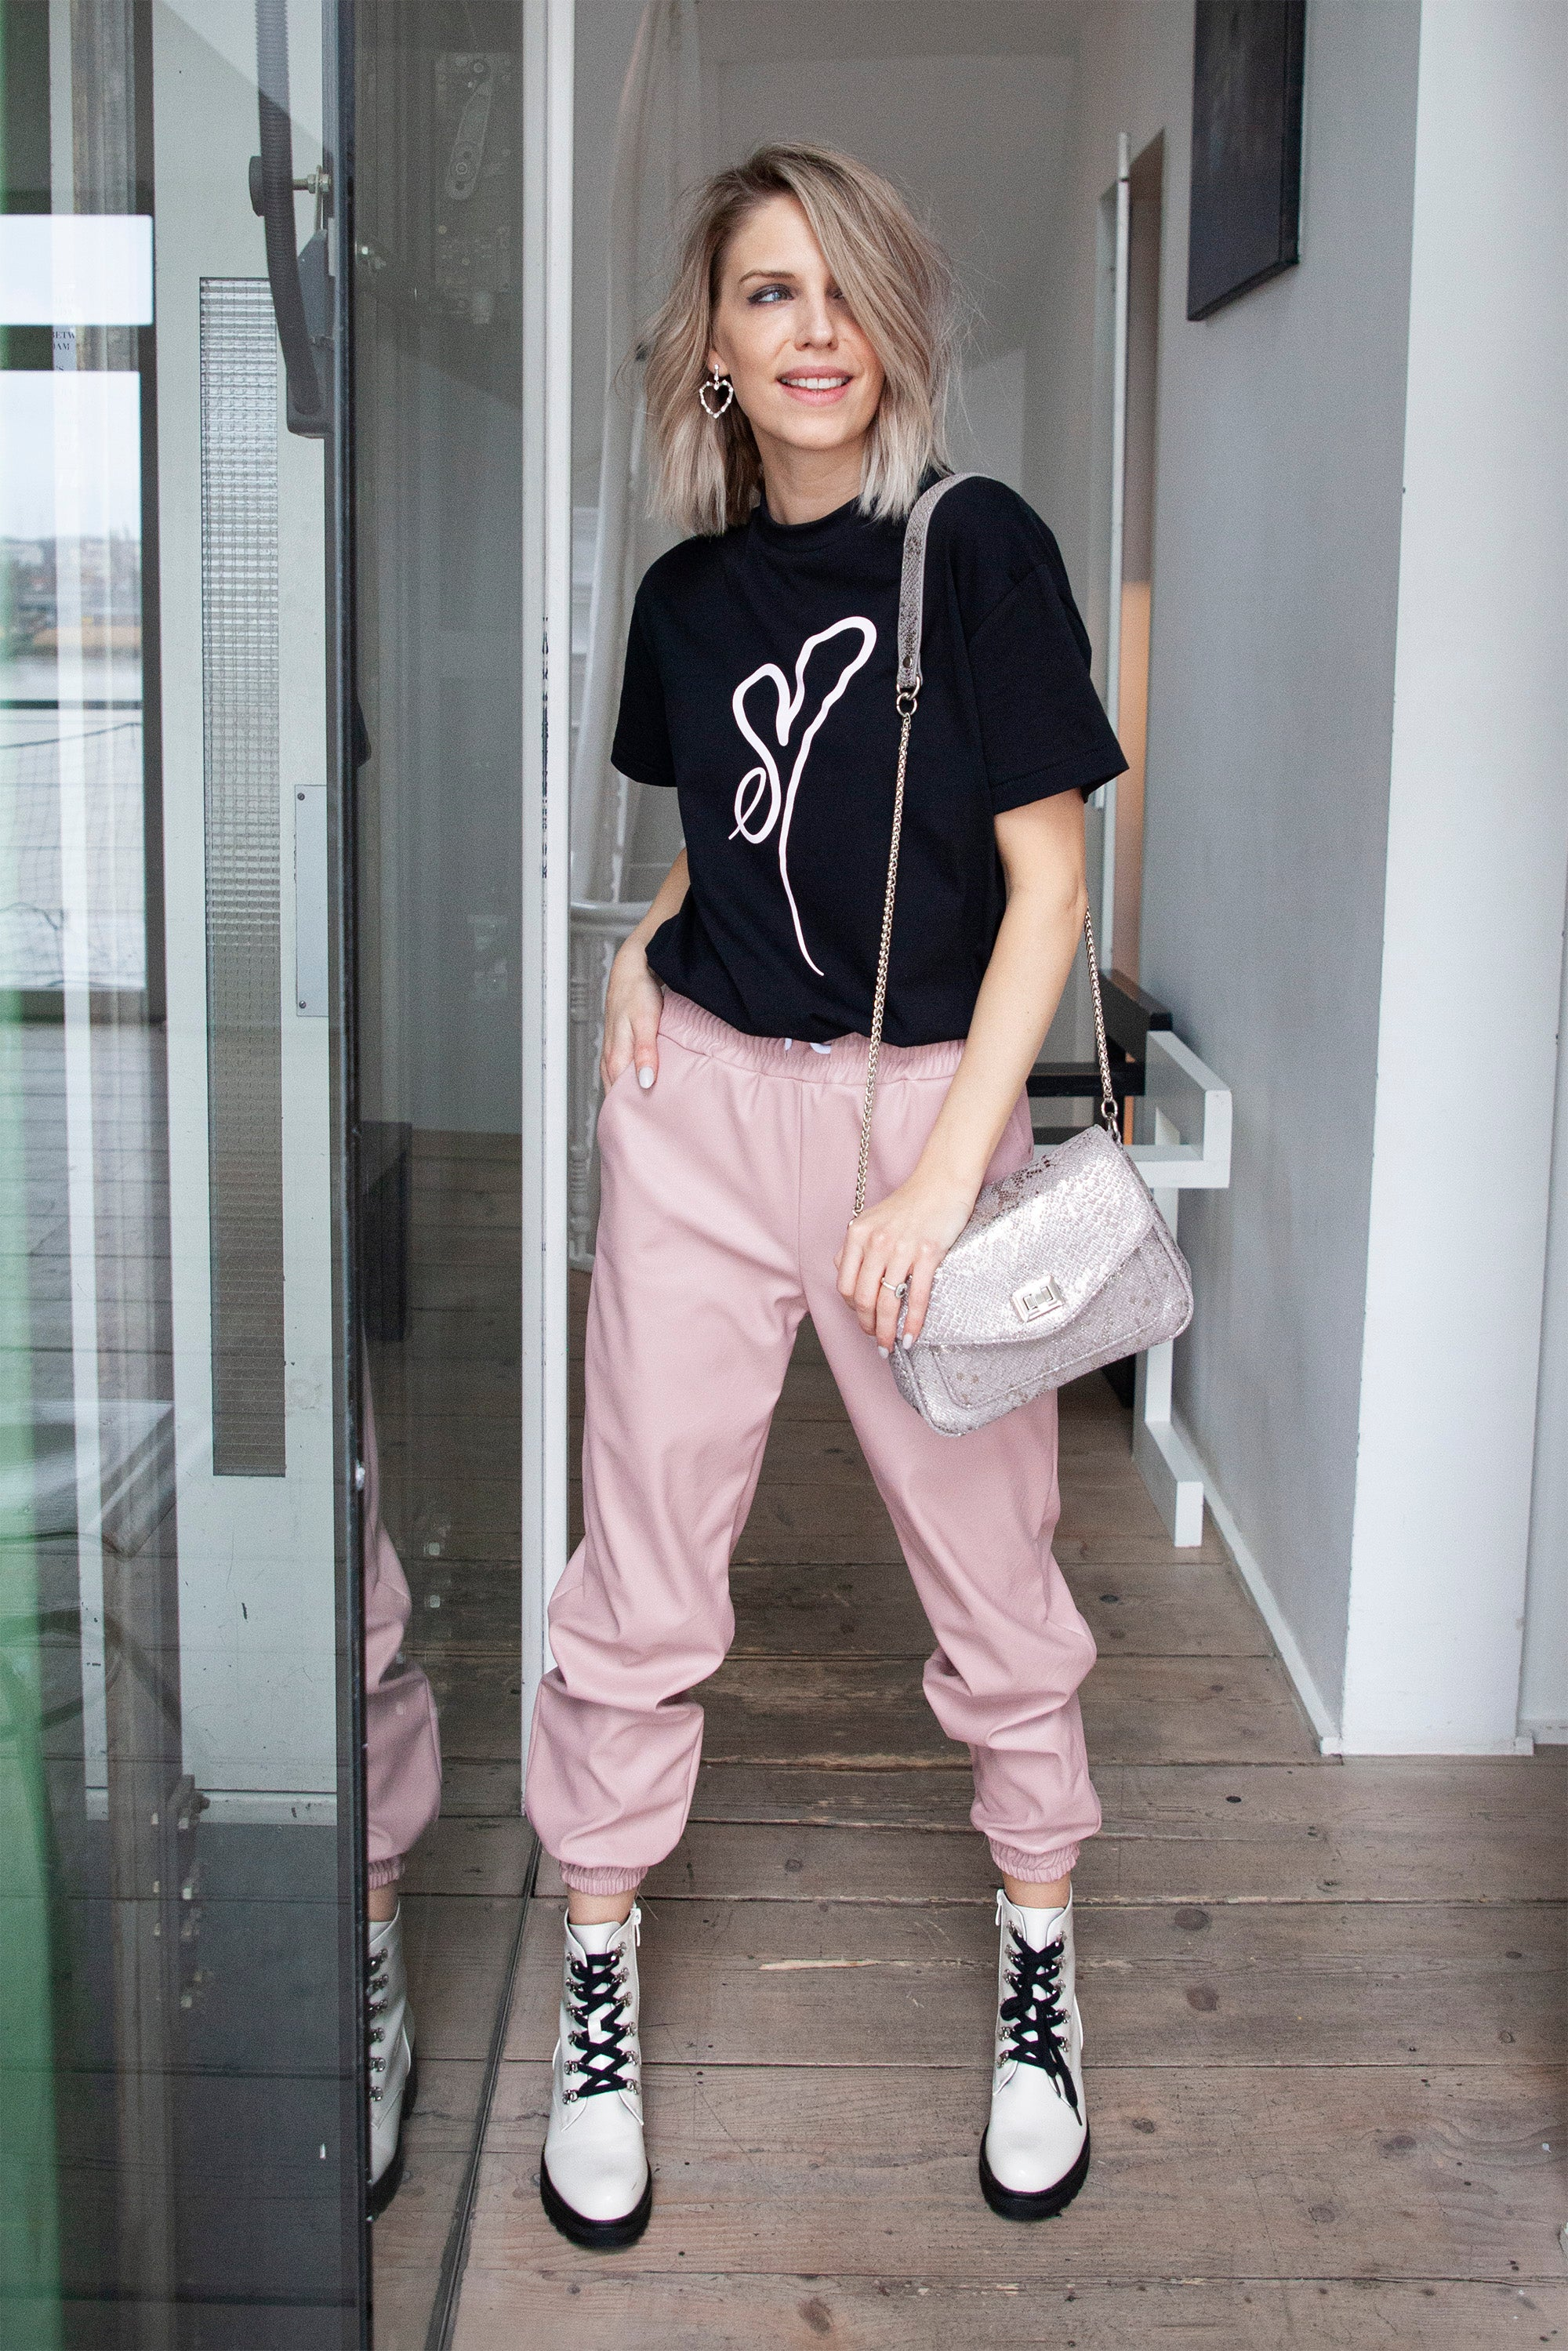 ellemilla ღ KYLIE in Black/Pink - T-shirt